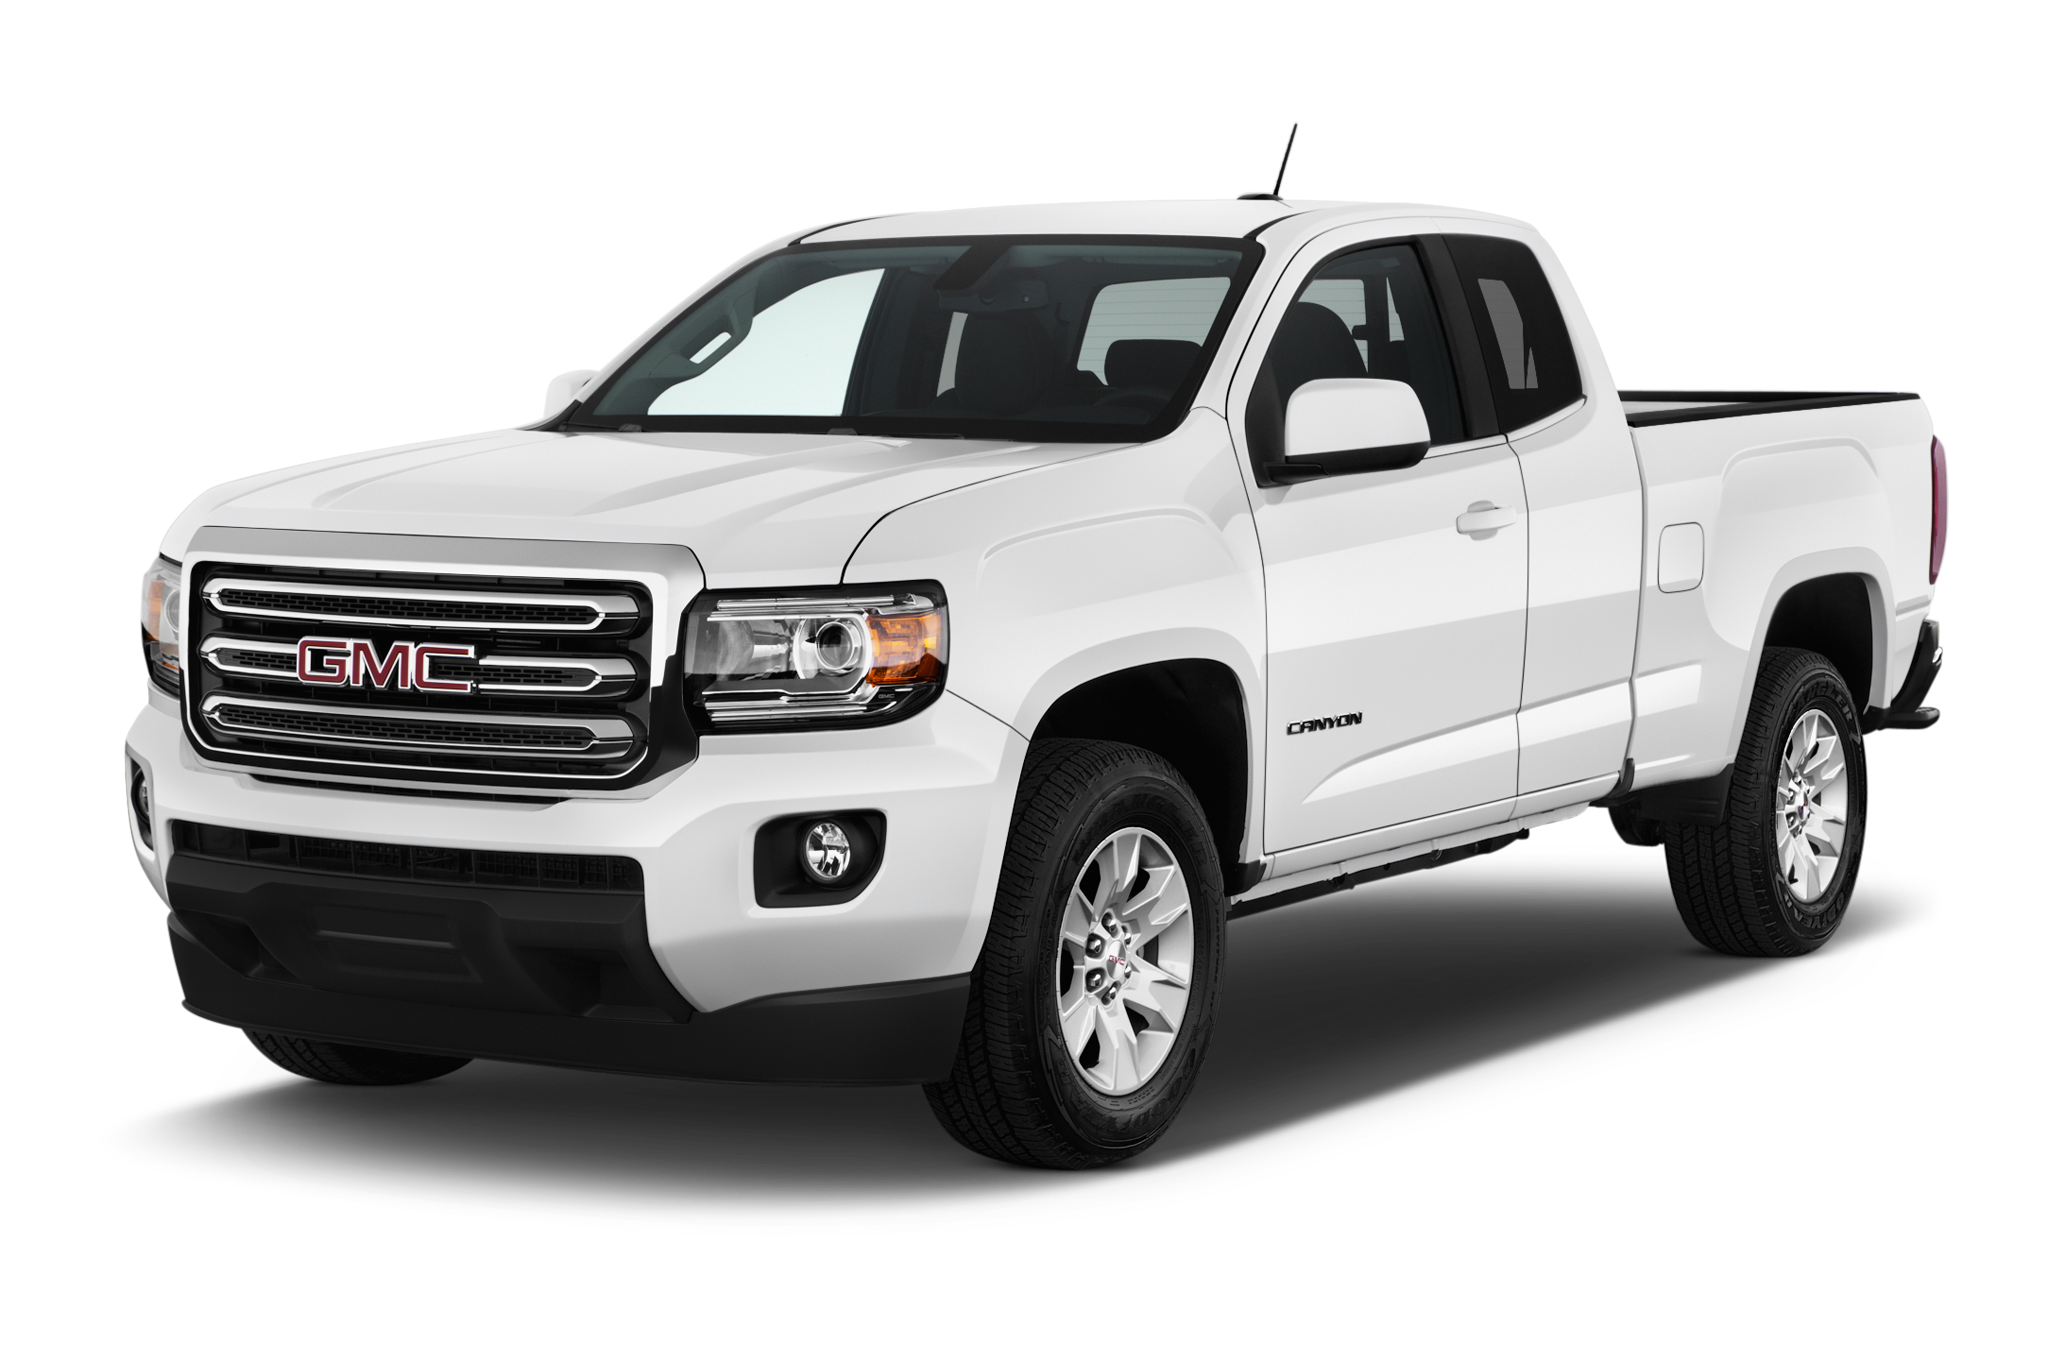 2017 gmc canyon 2wd base extended cab specs and features. Black Bedroom Furniture Sets. Home Design Ideas